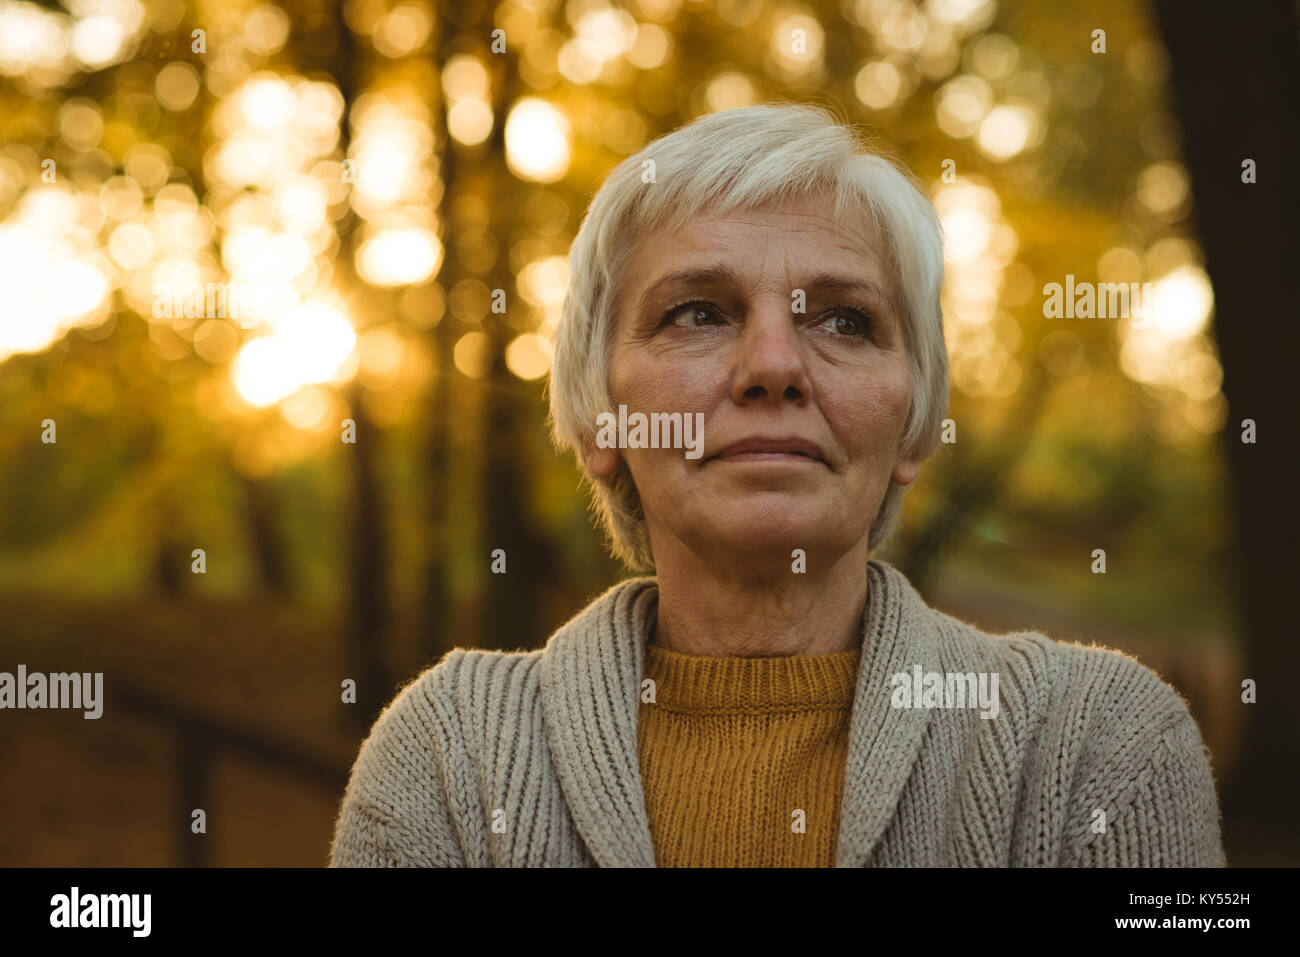 Thoughtful senior woman in autumn park - Stock Image